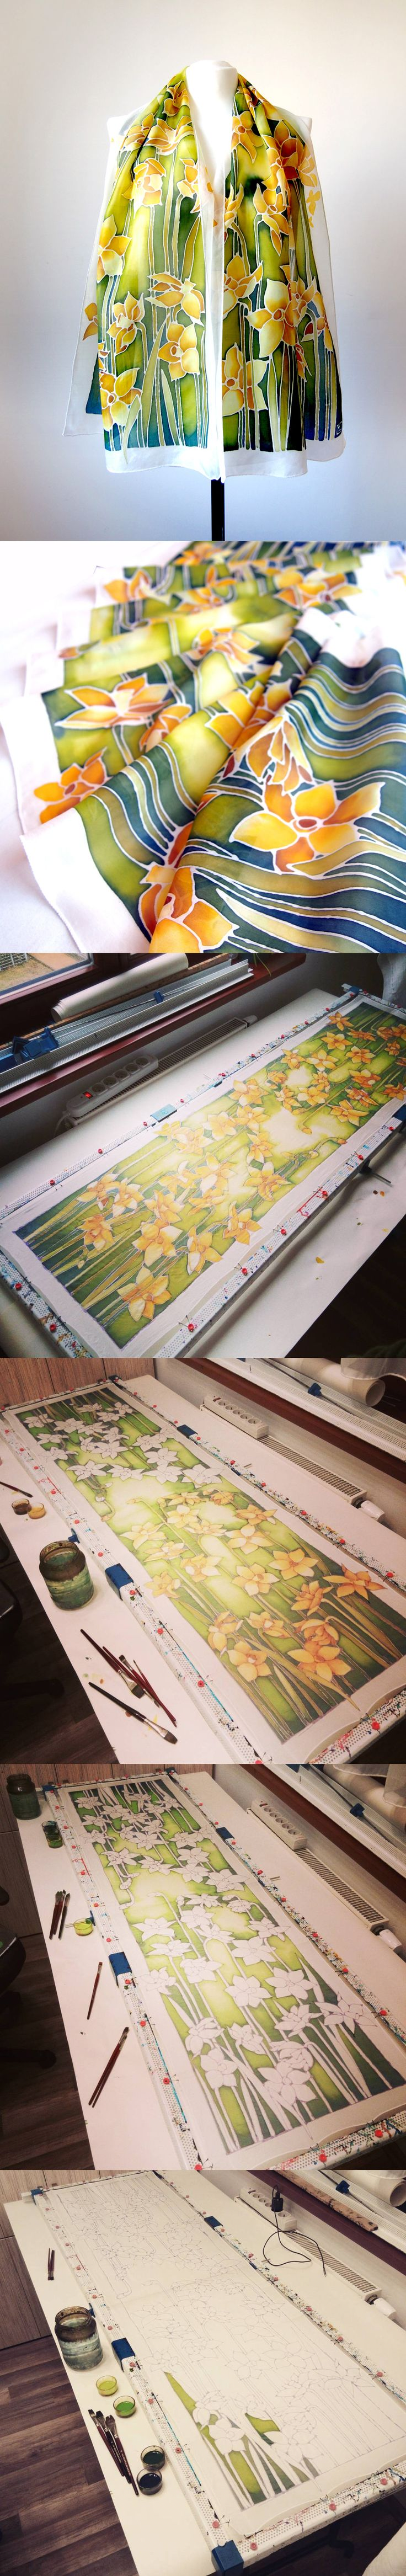 Daffodil silk scarf while being painted! Step by step work of Luiza Malinowska #minkulul